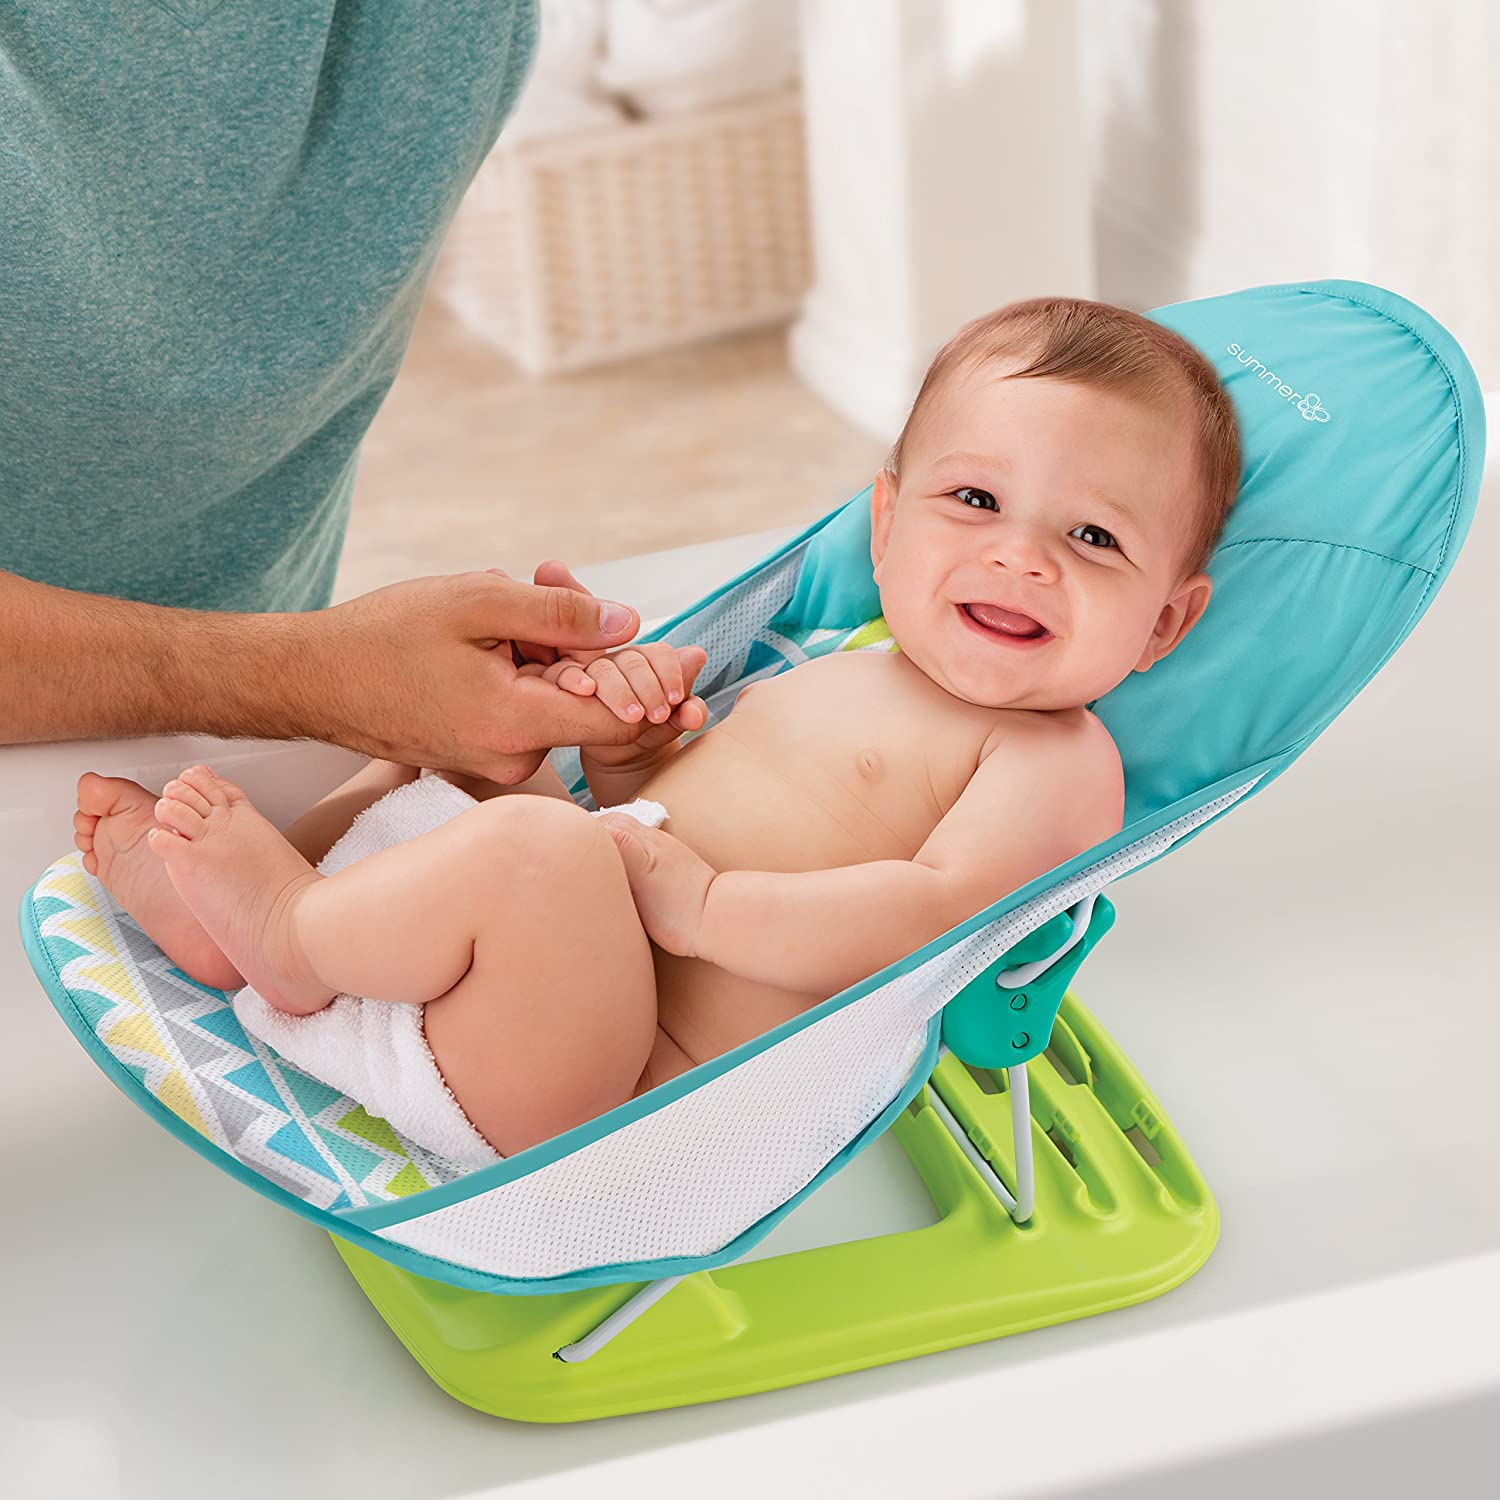 Amazon.com : Summer Infant Deluxe Baby Bather, Triangle Stripe : Baby